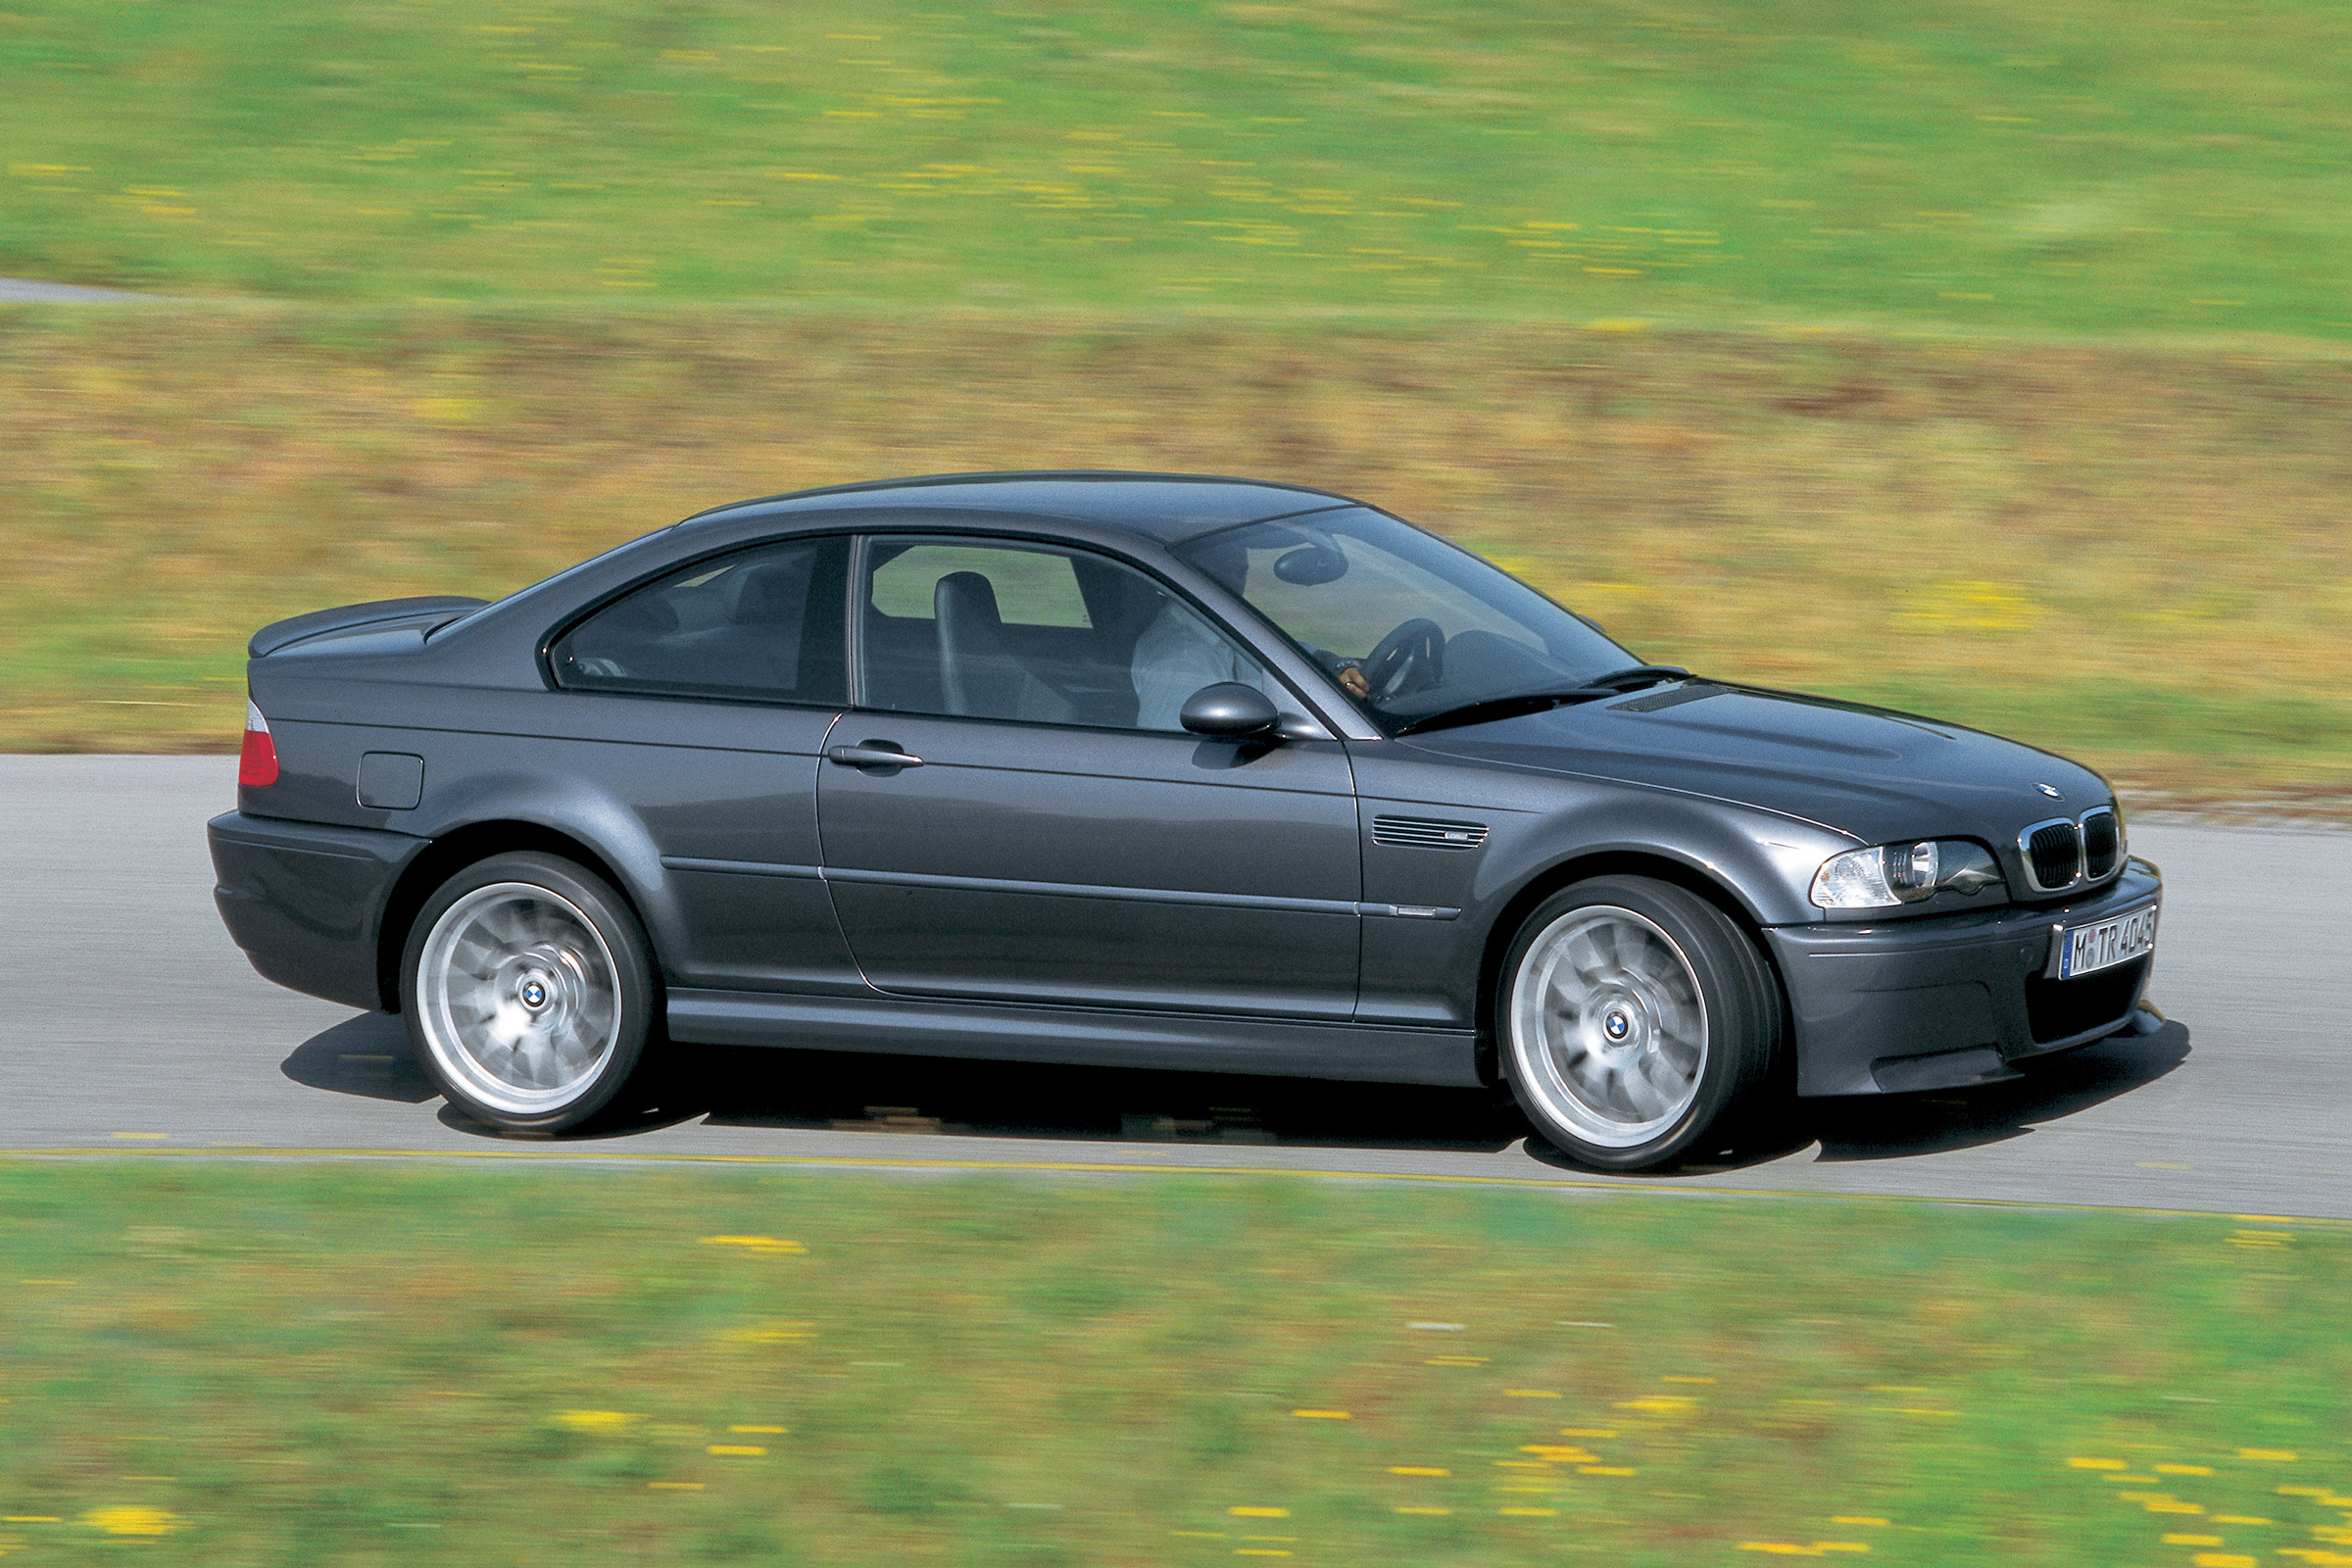 E46 Bmw M3 Csl Manual Conversion Package Revealed By Everything M3s Evo